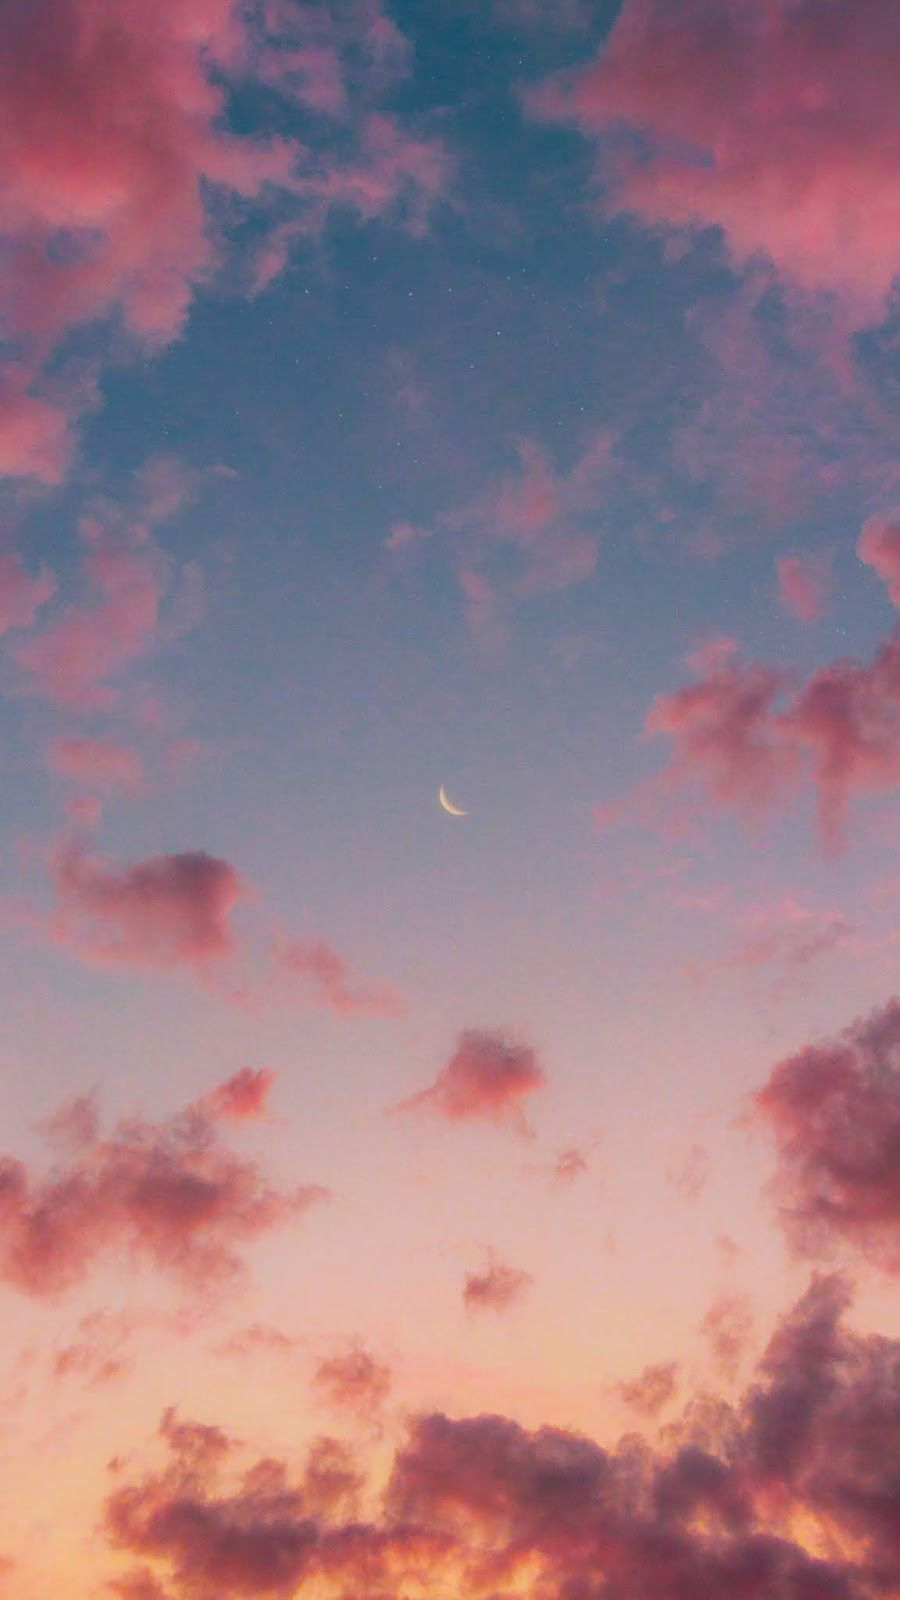 Pink Sky By Matialonsor With Images Cloud Wallpaper Sky